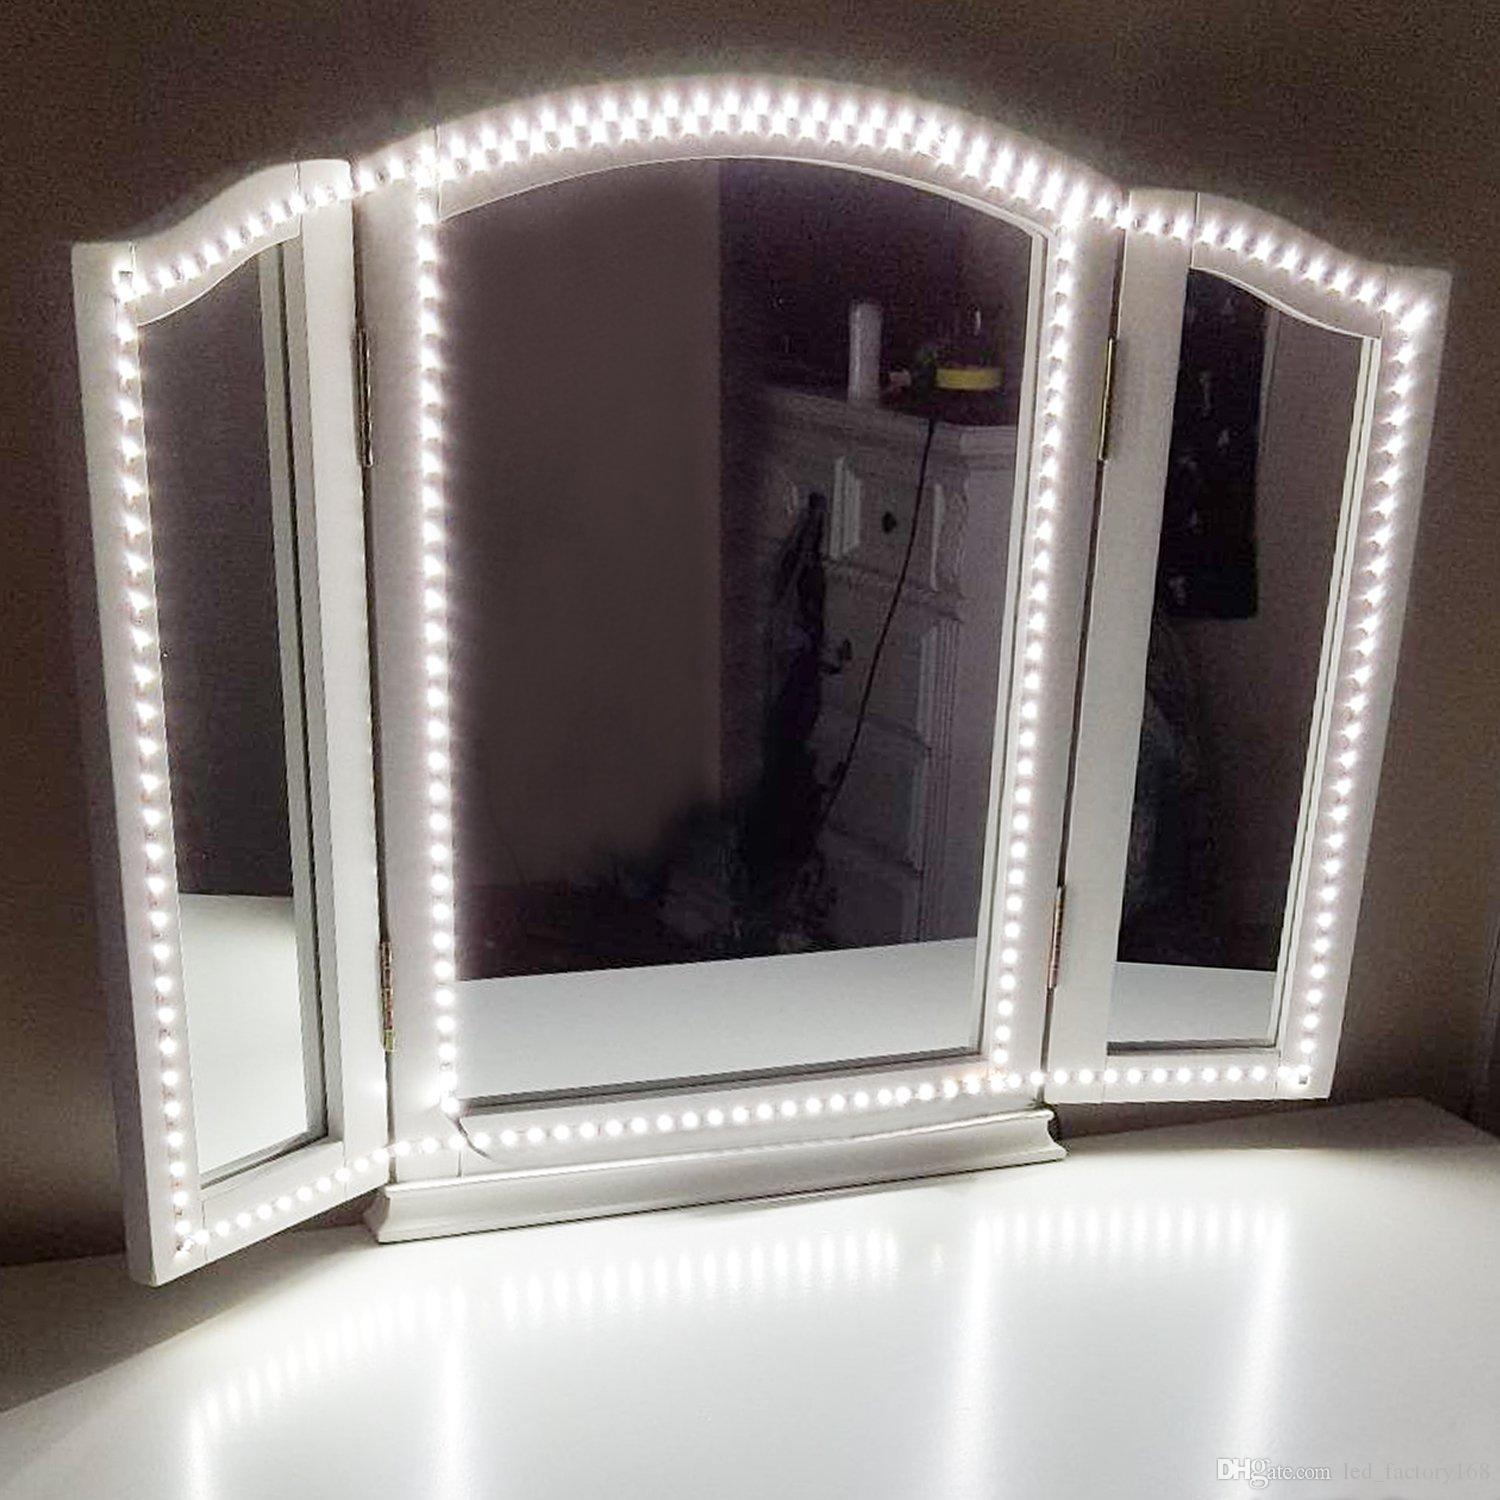 2019 Led Vanity Mirror Lights Kit For Makeup Dressing